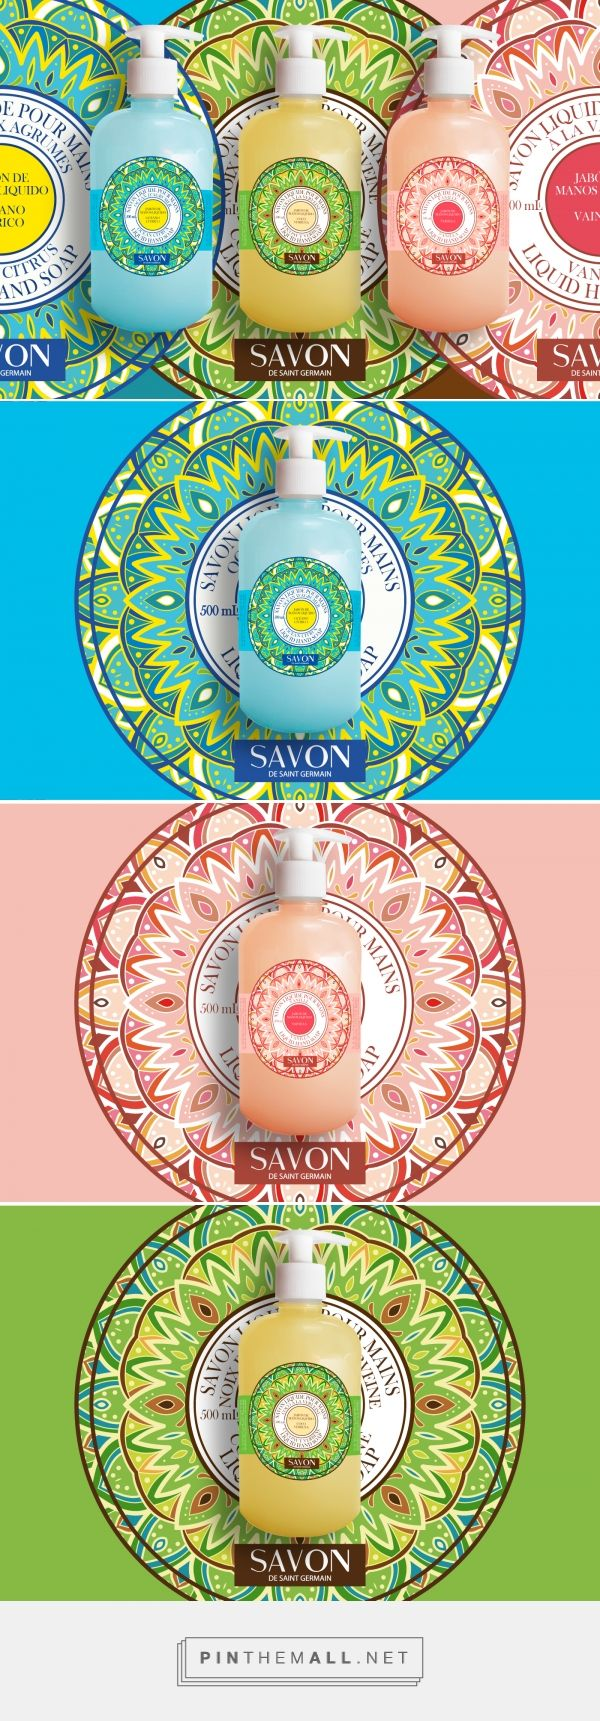 Jabones Savon de Saint Germain by Gaby Herres. Source: Behance. Pin curated by #SFields99 #packaging #design #inspiration #beauty #cosmetics